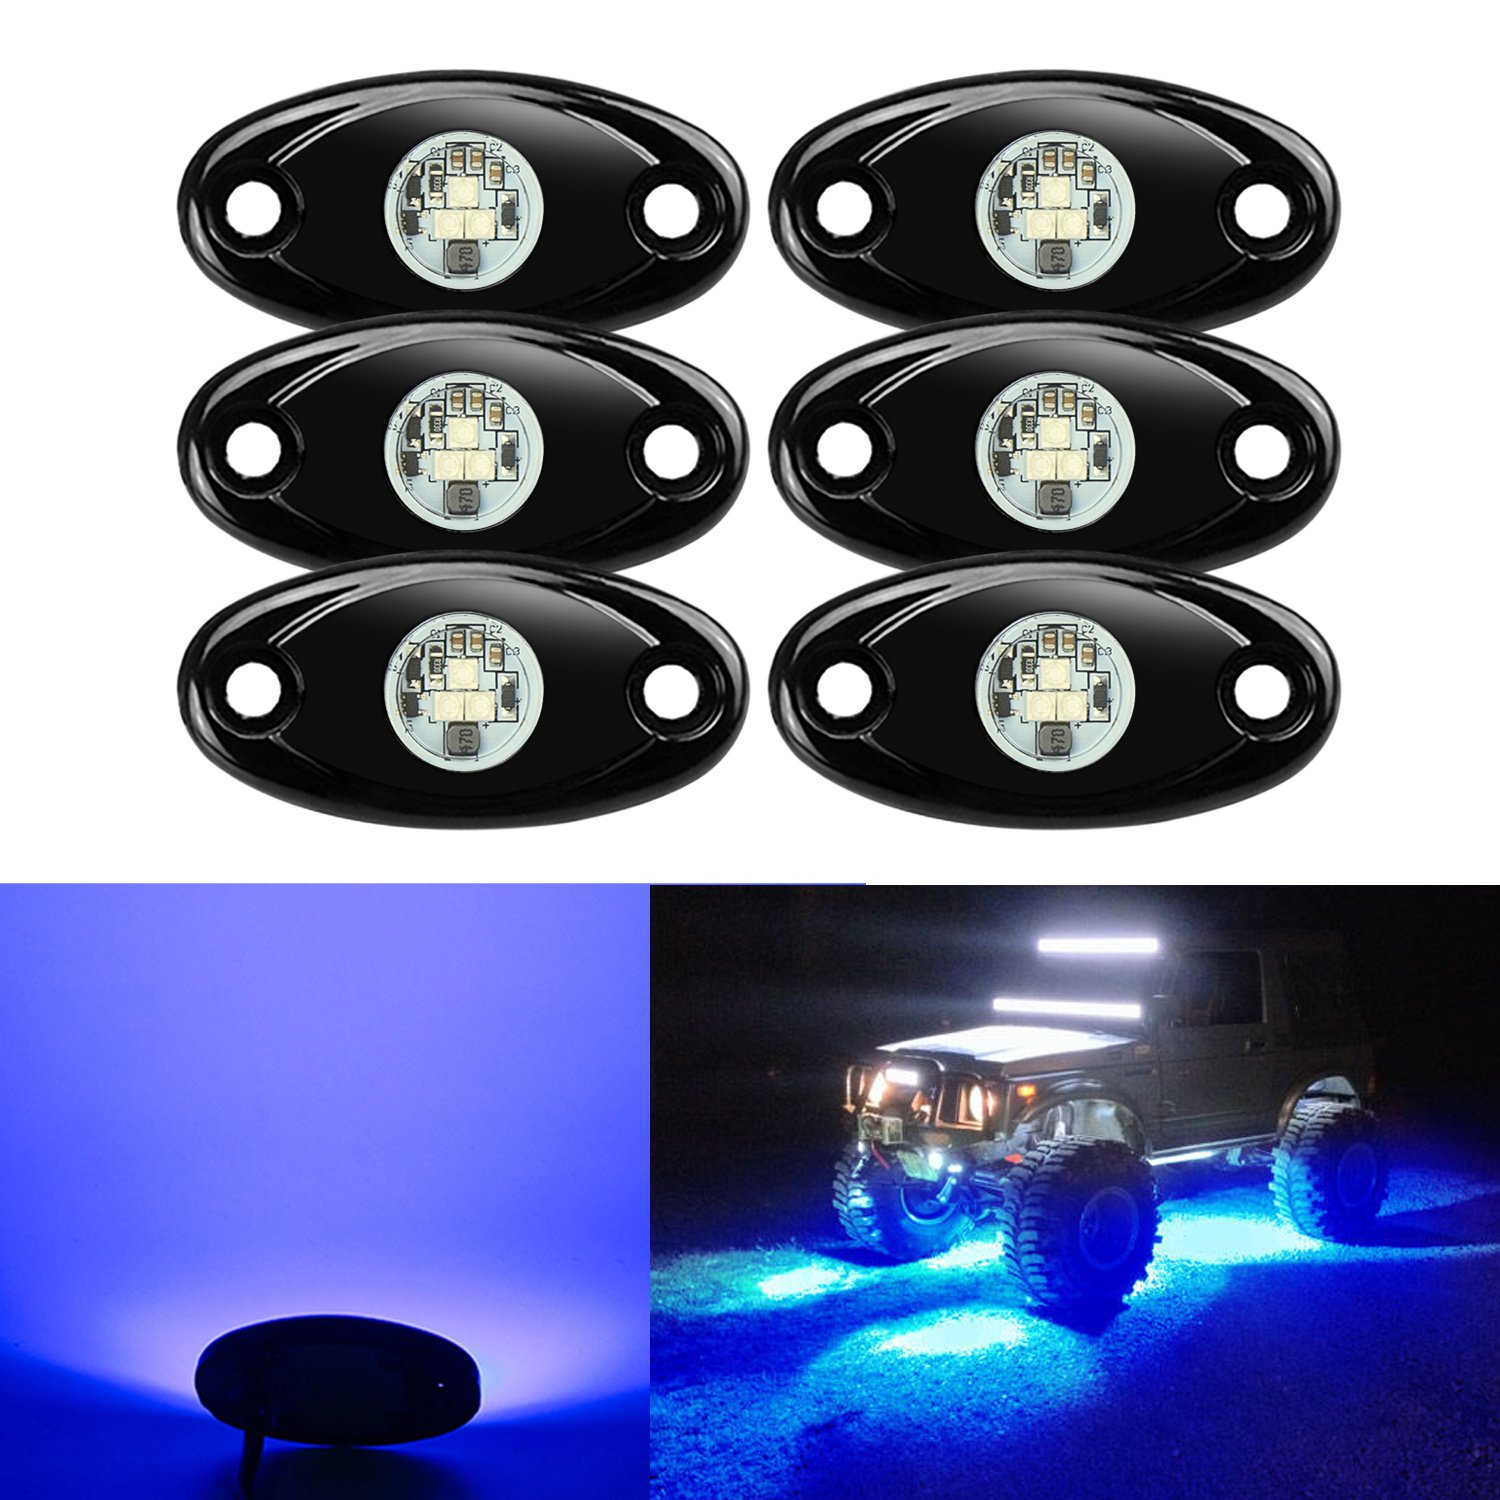 Best Rated In Automotive Neon Accent Light Kits Helpful Customer Underglow Wiring Diagram 6 Pods Led Rock Lights Kit Ampper Waterproof Trail Rig For Car Truck Atv Utv Baja Raptor Offroad Boat Lamp Underbody